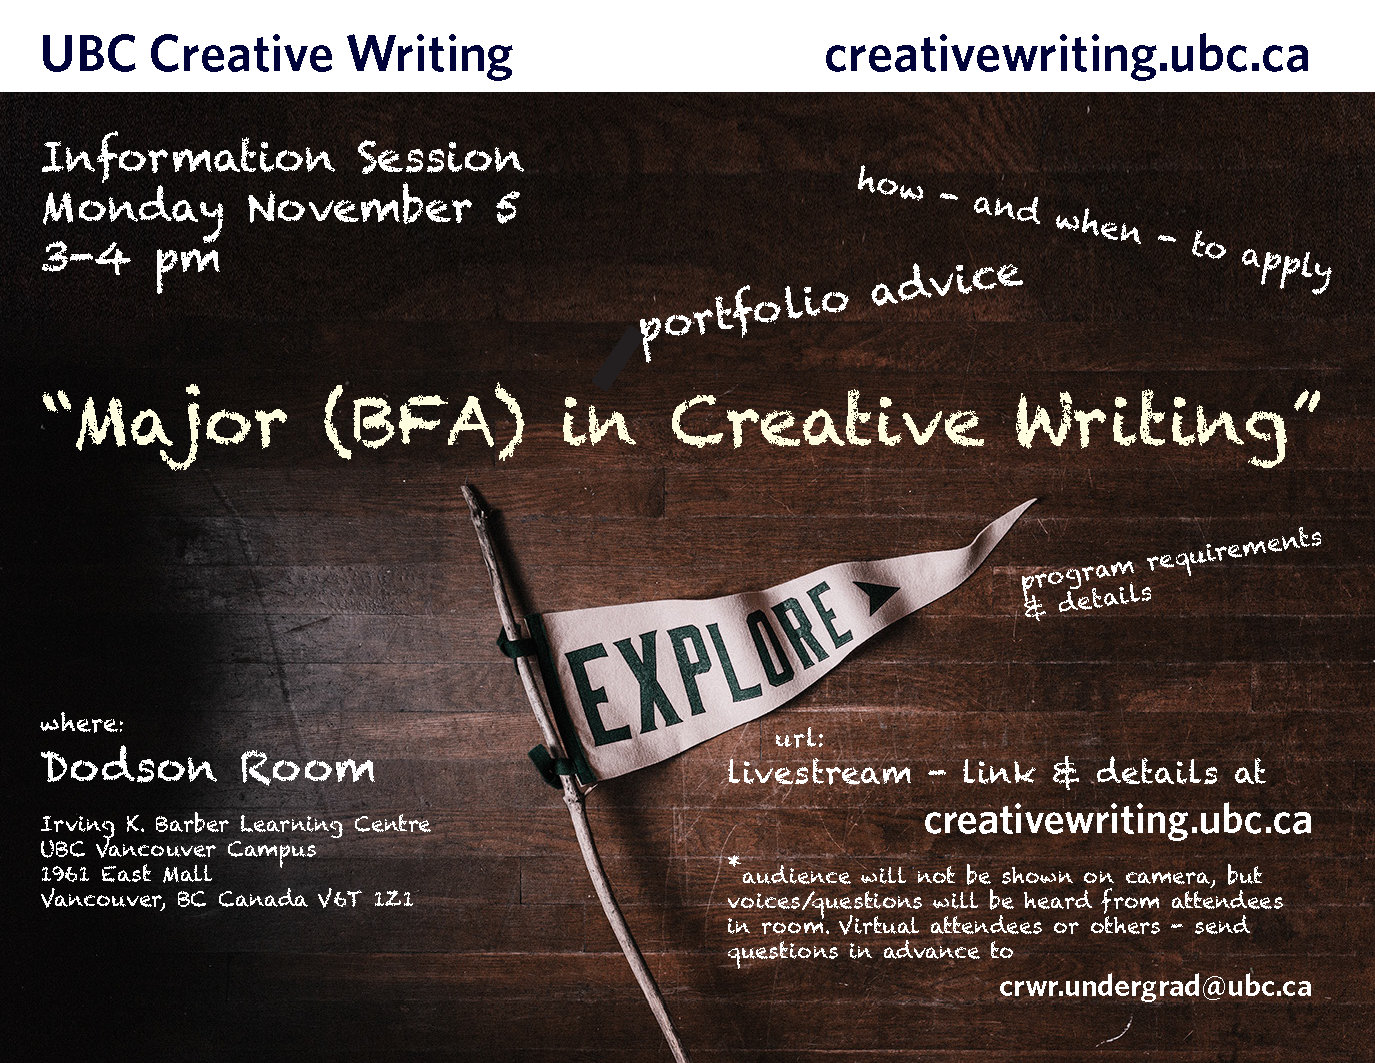 events archive - creative writing